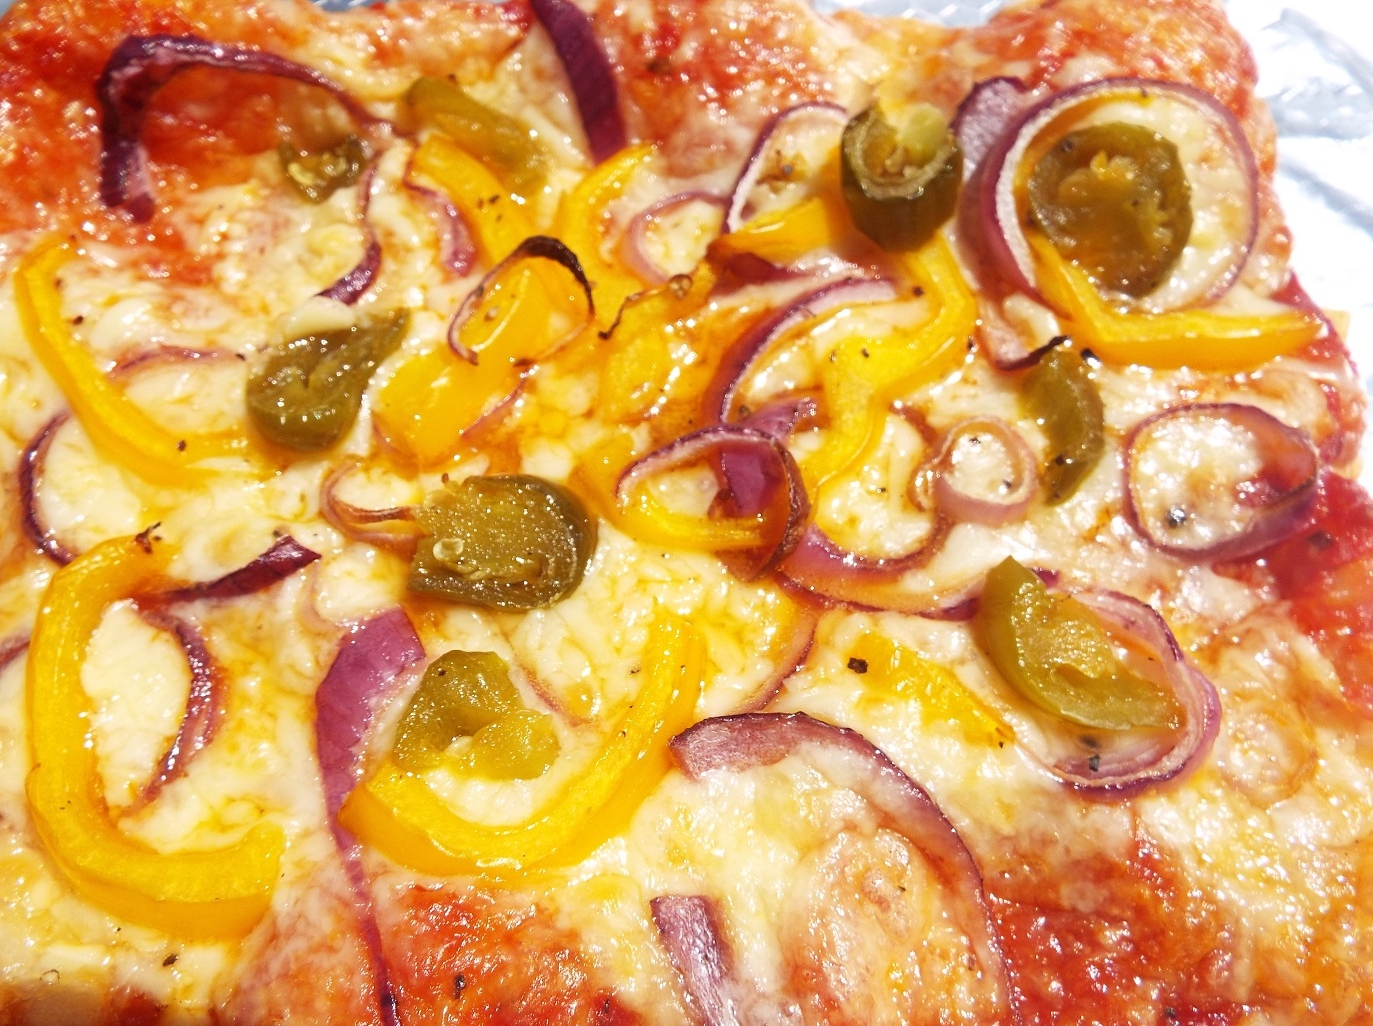 Pizza Tray Bake - Heat oven. Roll out pizza dough (you can use pre-made or pizza dough mix), add the pizza tomato topping.Add grated cheese and all the toppings - this one has onion, yellow peppers and green jalapenos. Add seasoning.Bake in a hot oven for about 30 minutes.